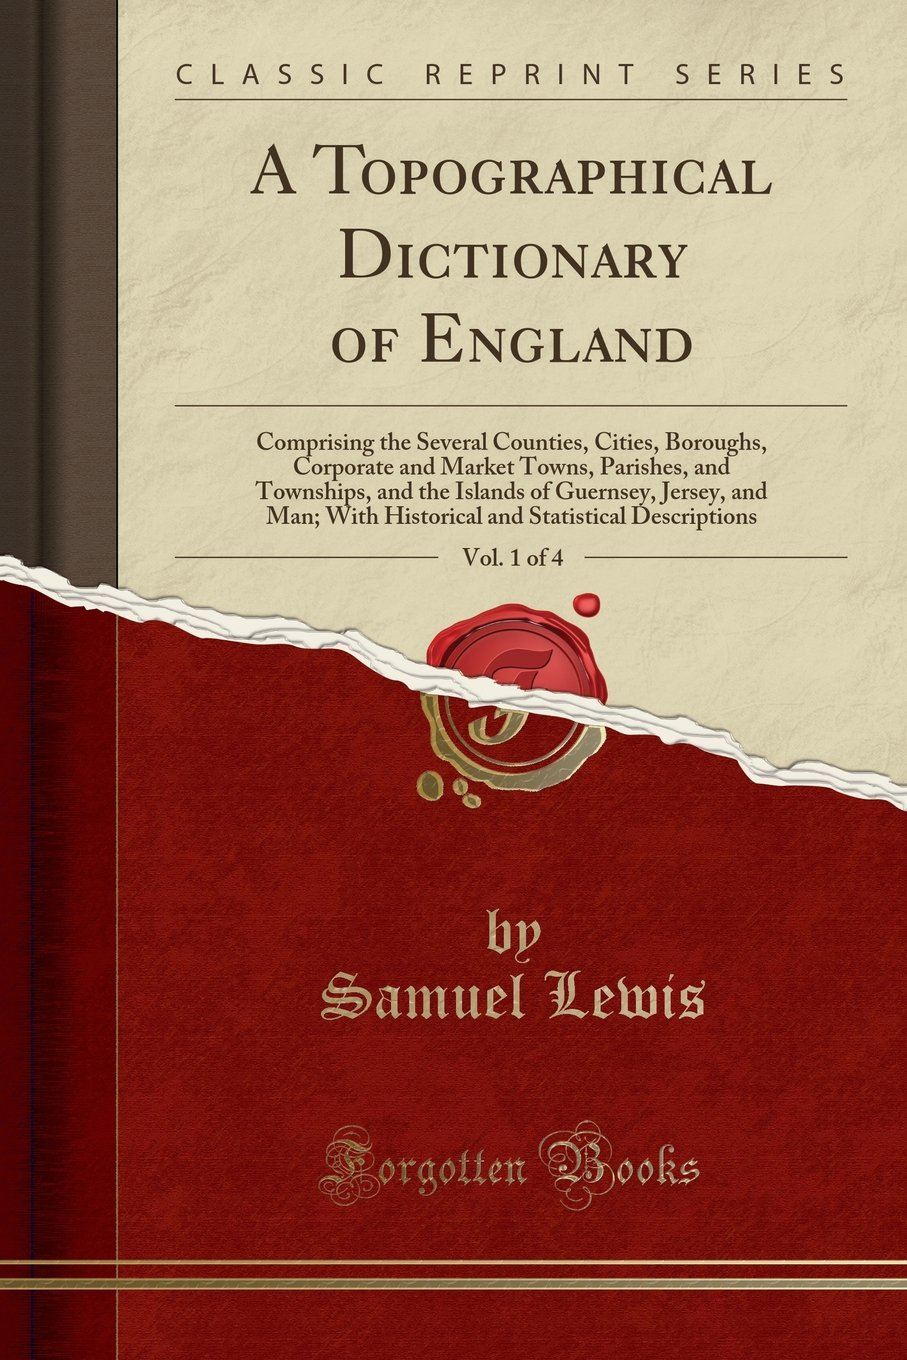 Download A Topographical Dictionary of England, Vol. 1 of 4: Comprising the Several Counties, Cities, Boroughs, Corporate and Market Towns, Parishes, and ... With Historical and Statistical Descriptions PDF